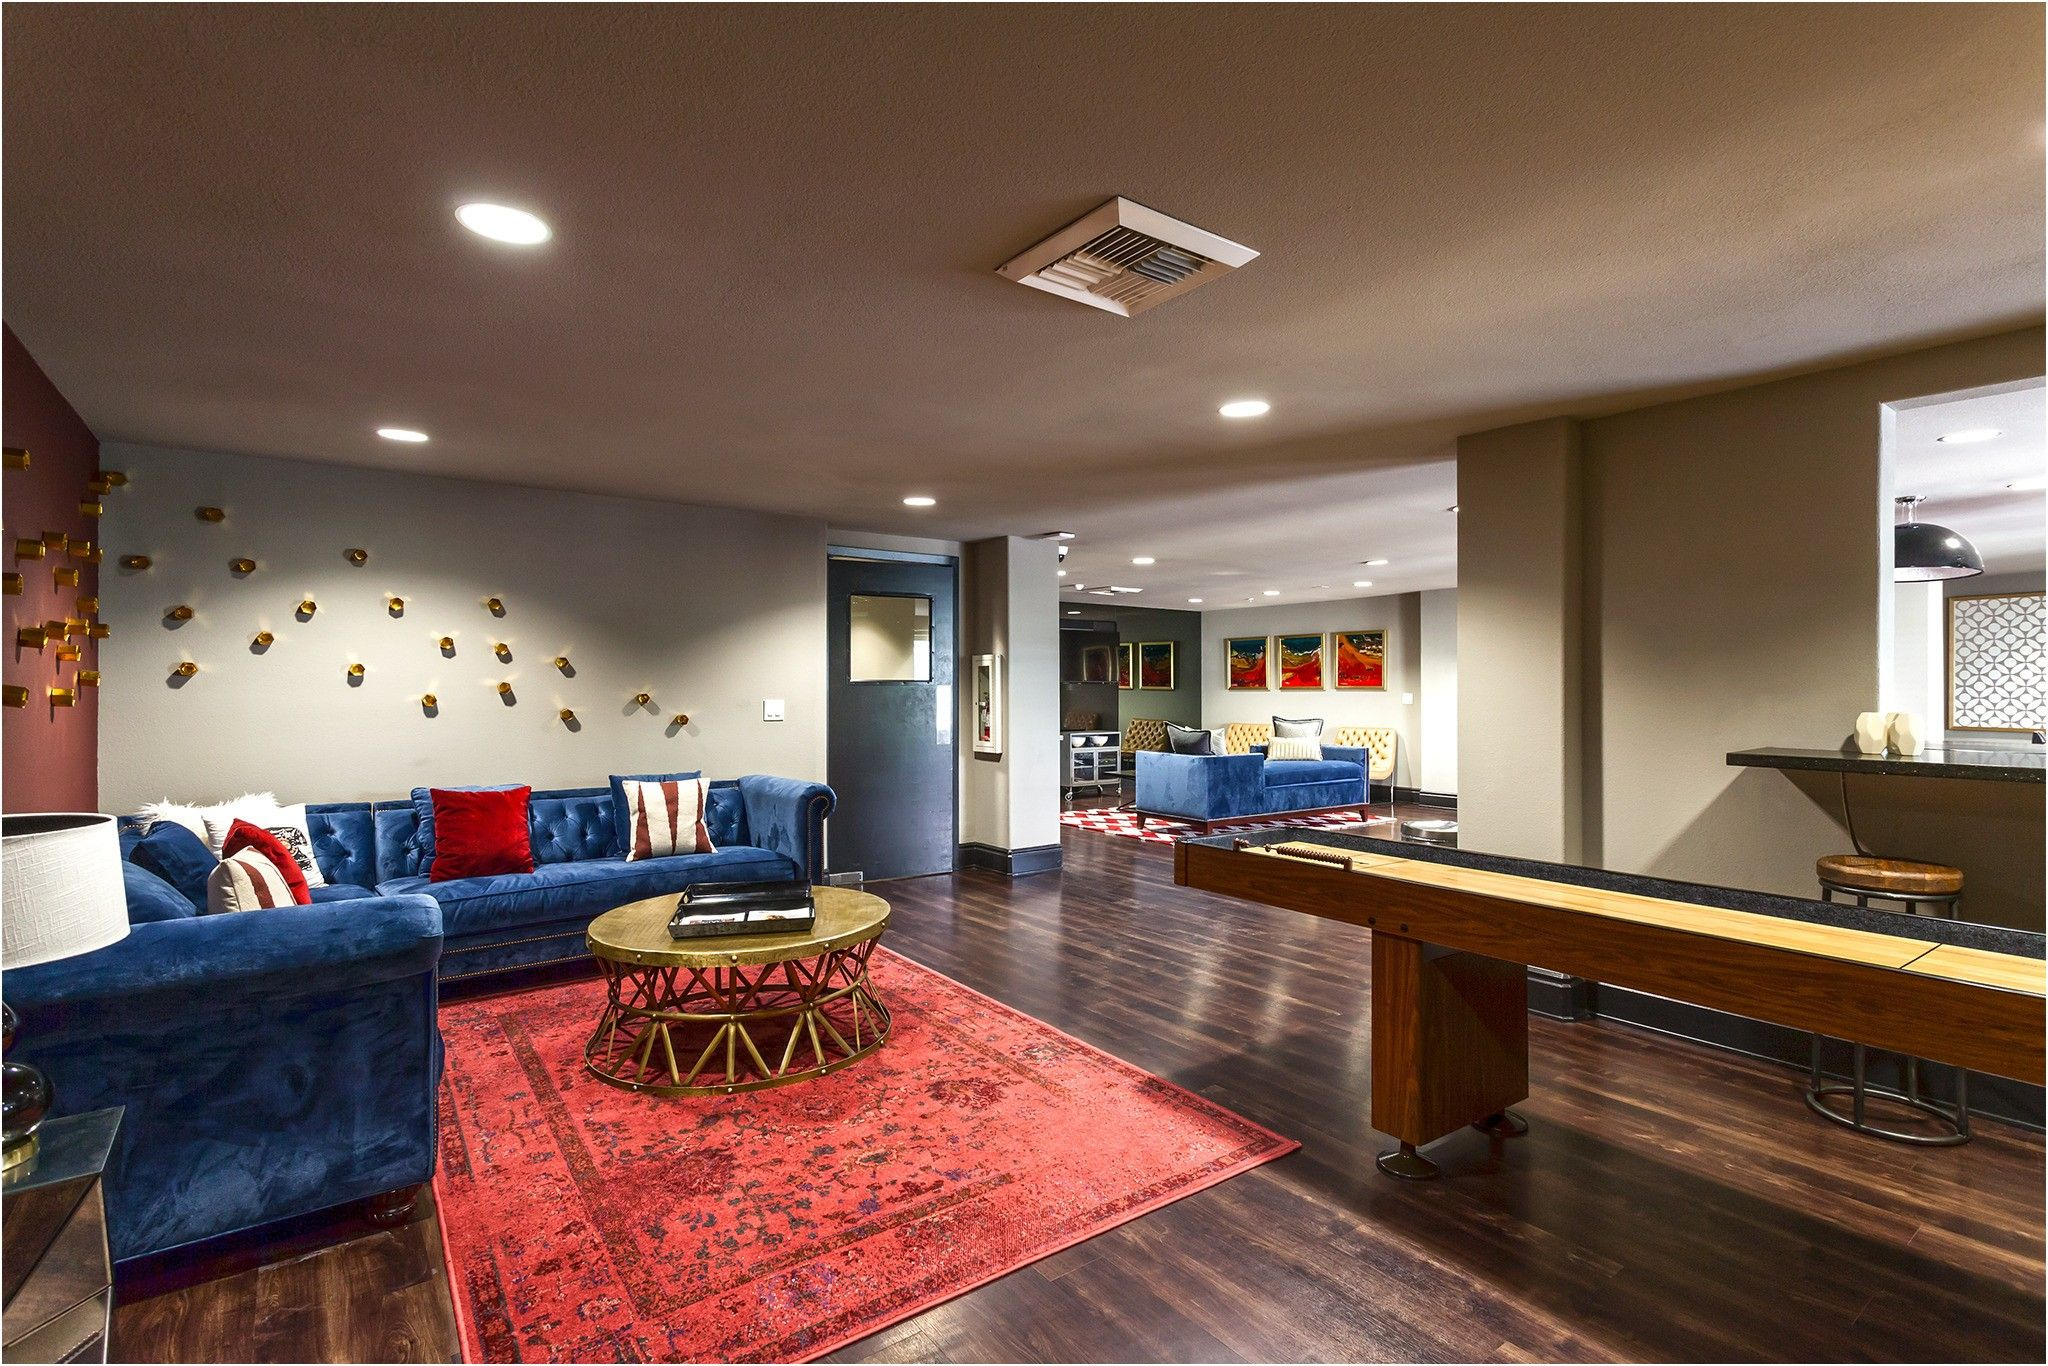 20 Best 2 Bedroom Apartments In Long Beach Ca With Pics From Houses